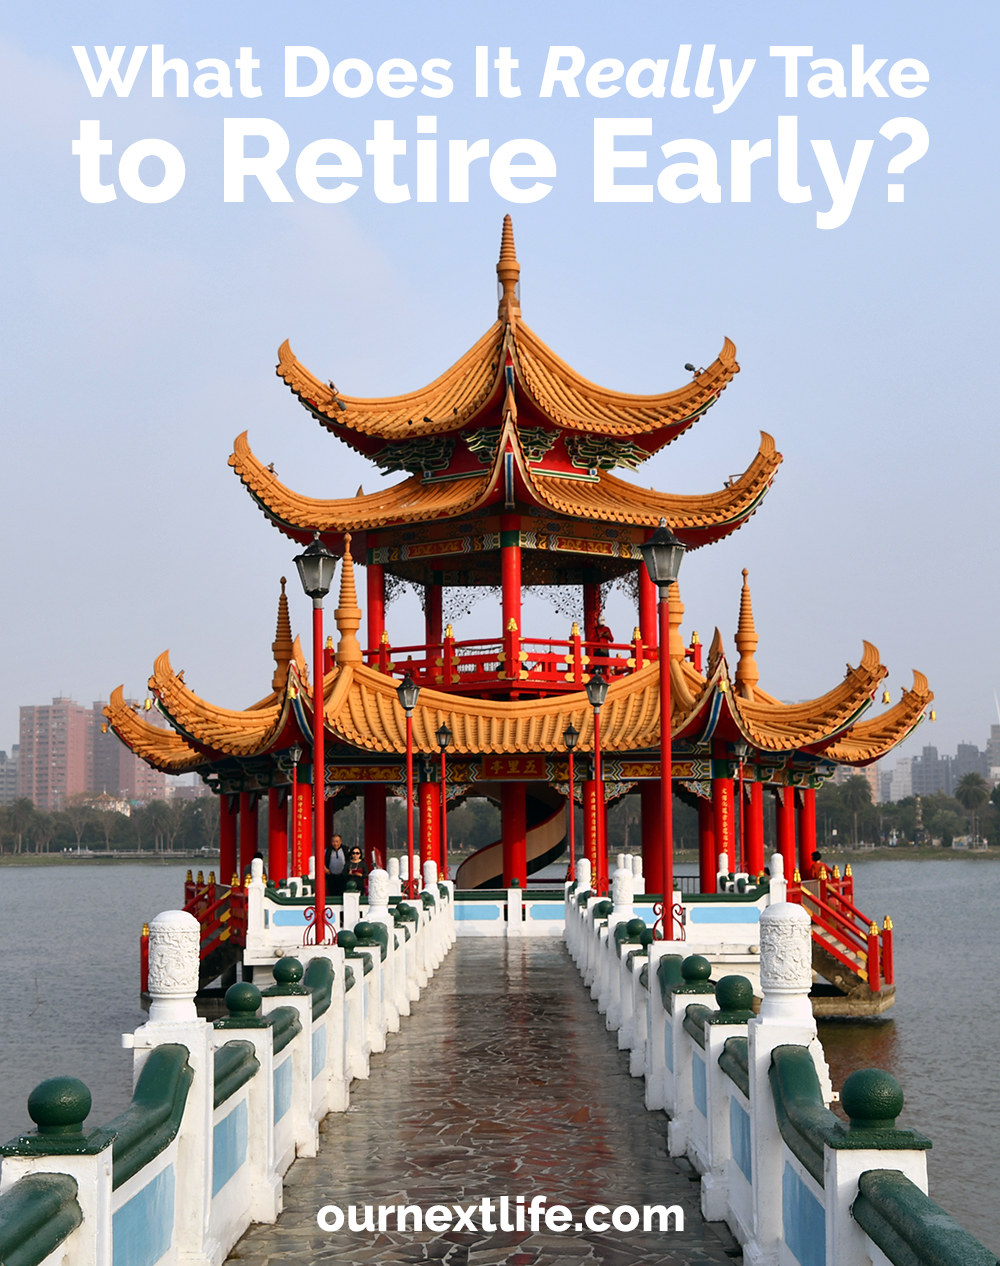 What It Really Takes to Retire Early // Our Next Life // early retirement, financial independence, FIRE